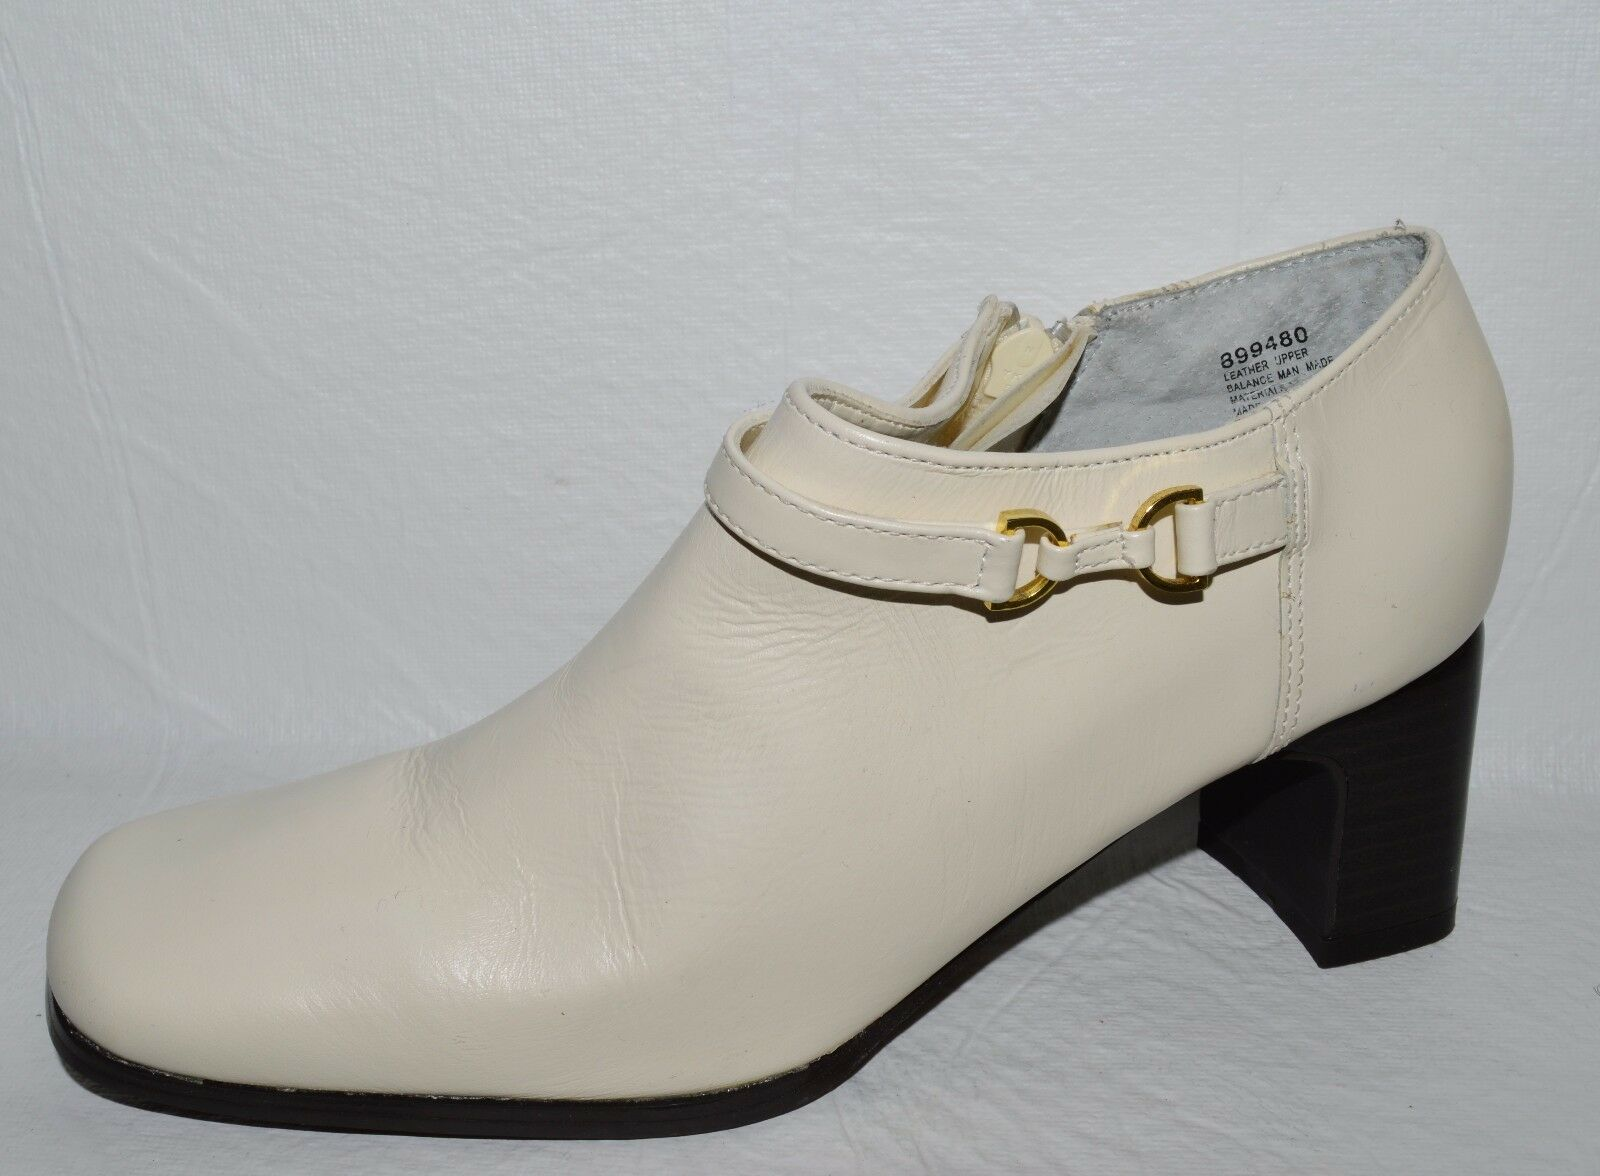 AJ VALENCI NEW SZ 5.5 M WHITE LEATHER BOOTIES LOAFER PUMPS HEELS SHOES BOOTIES LEATHER ba3c4f